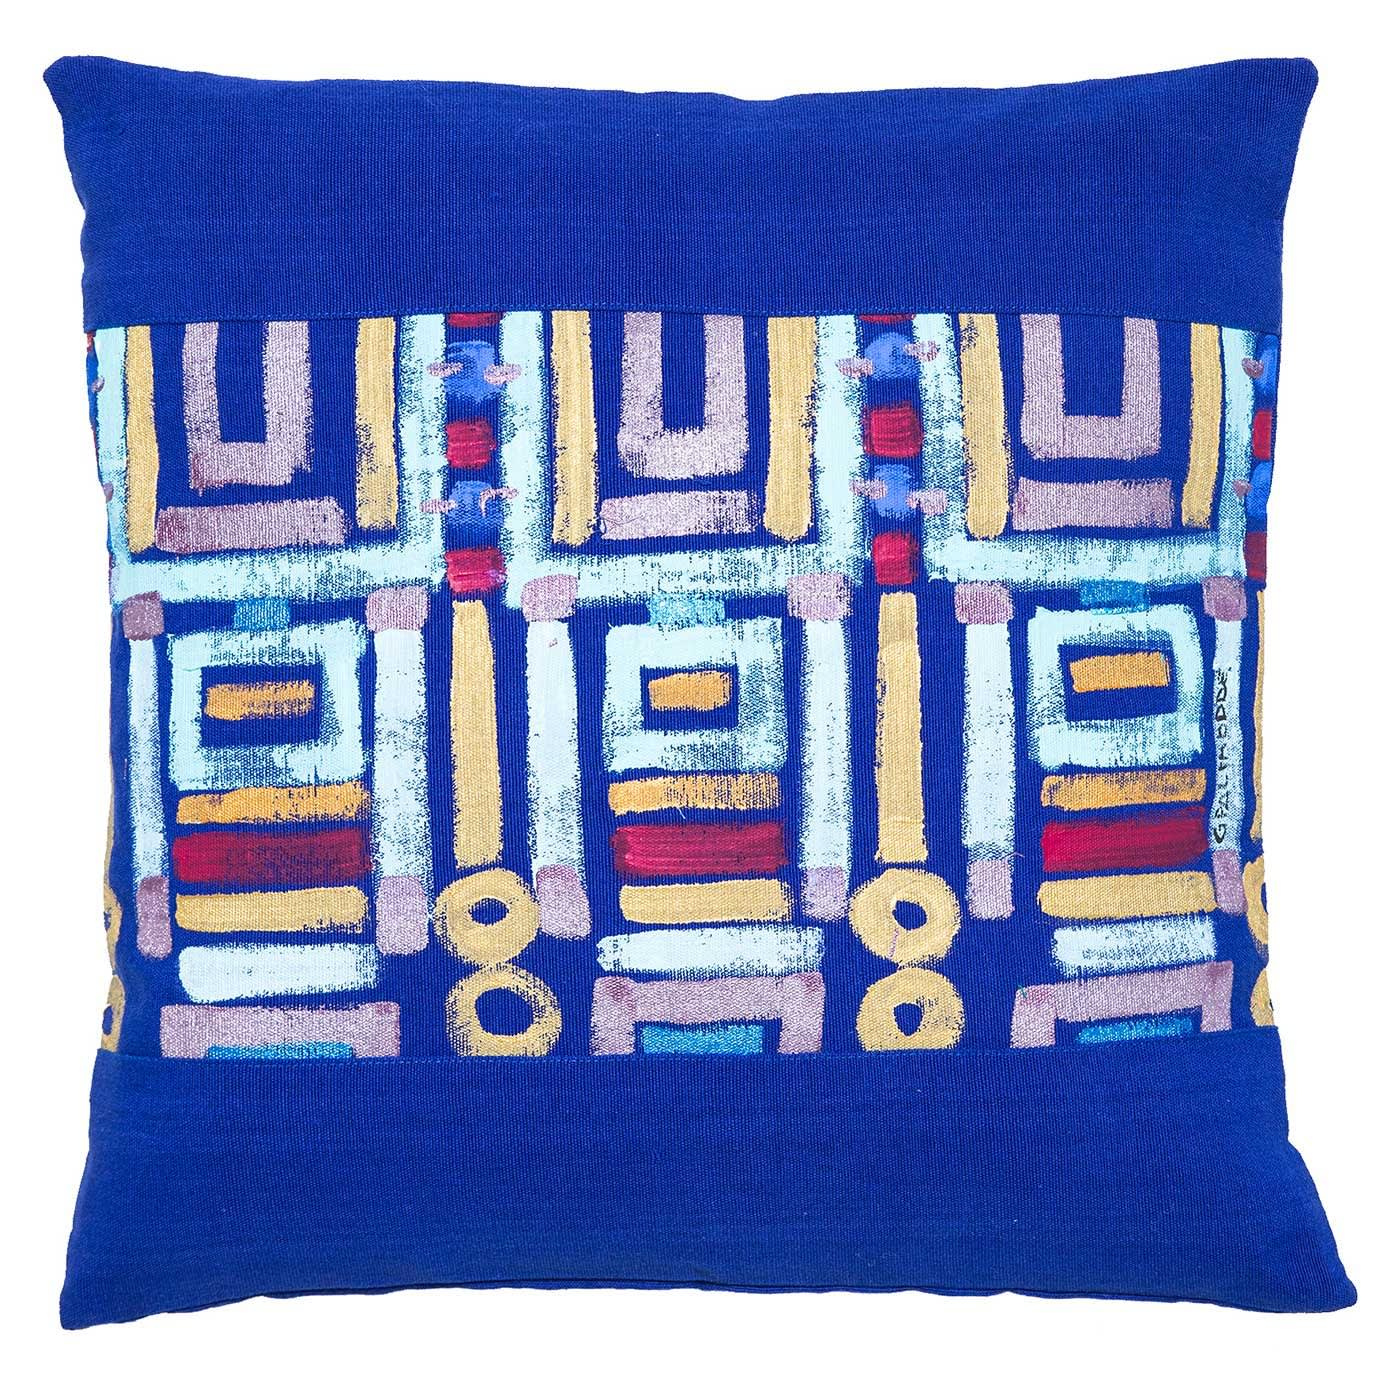 Acrylic Hand Painted Outdoor Cushion 40x40 cm